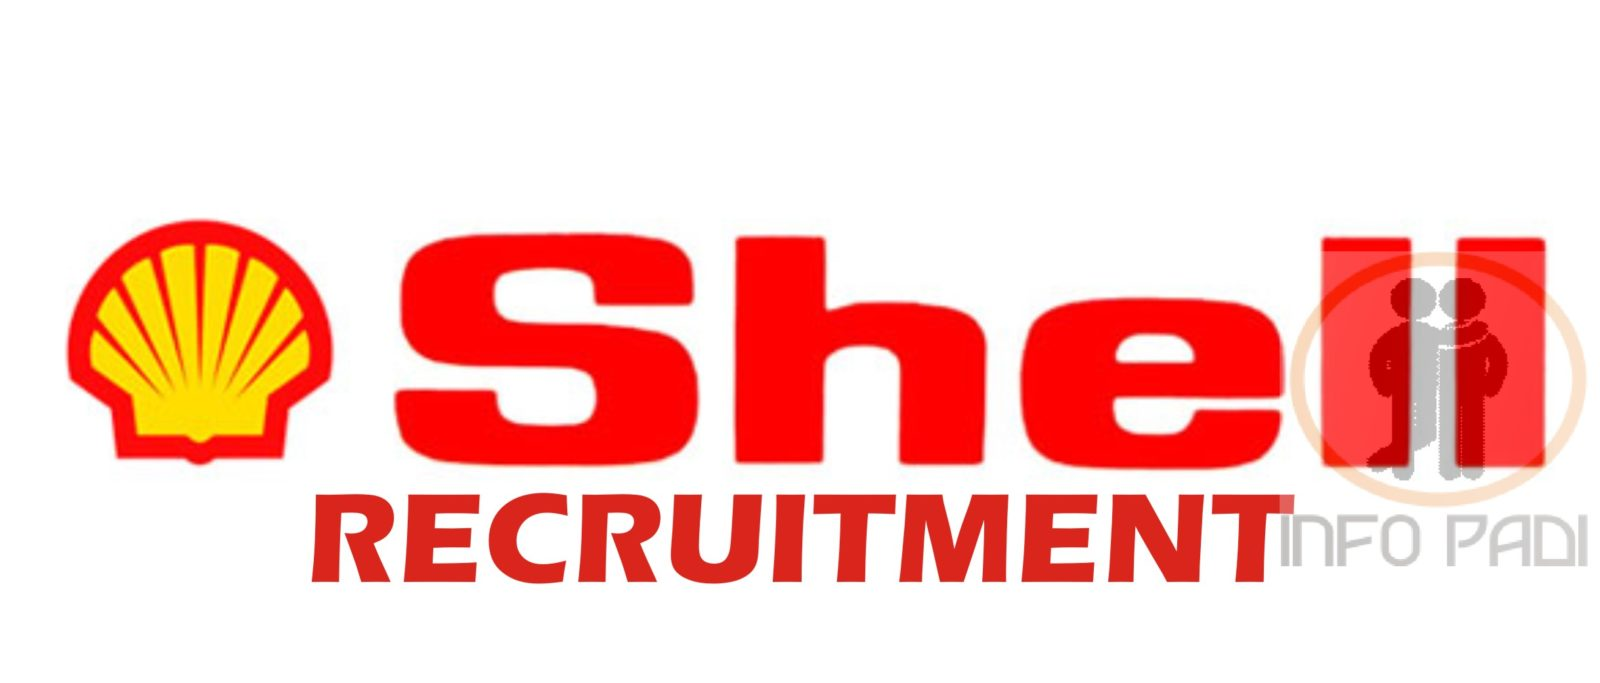 SPDC Recruitment